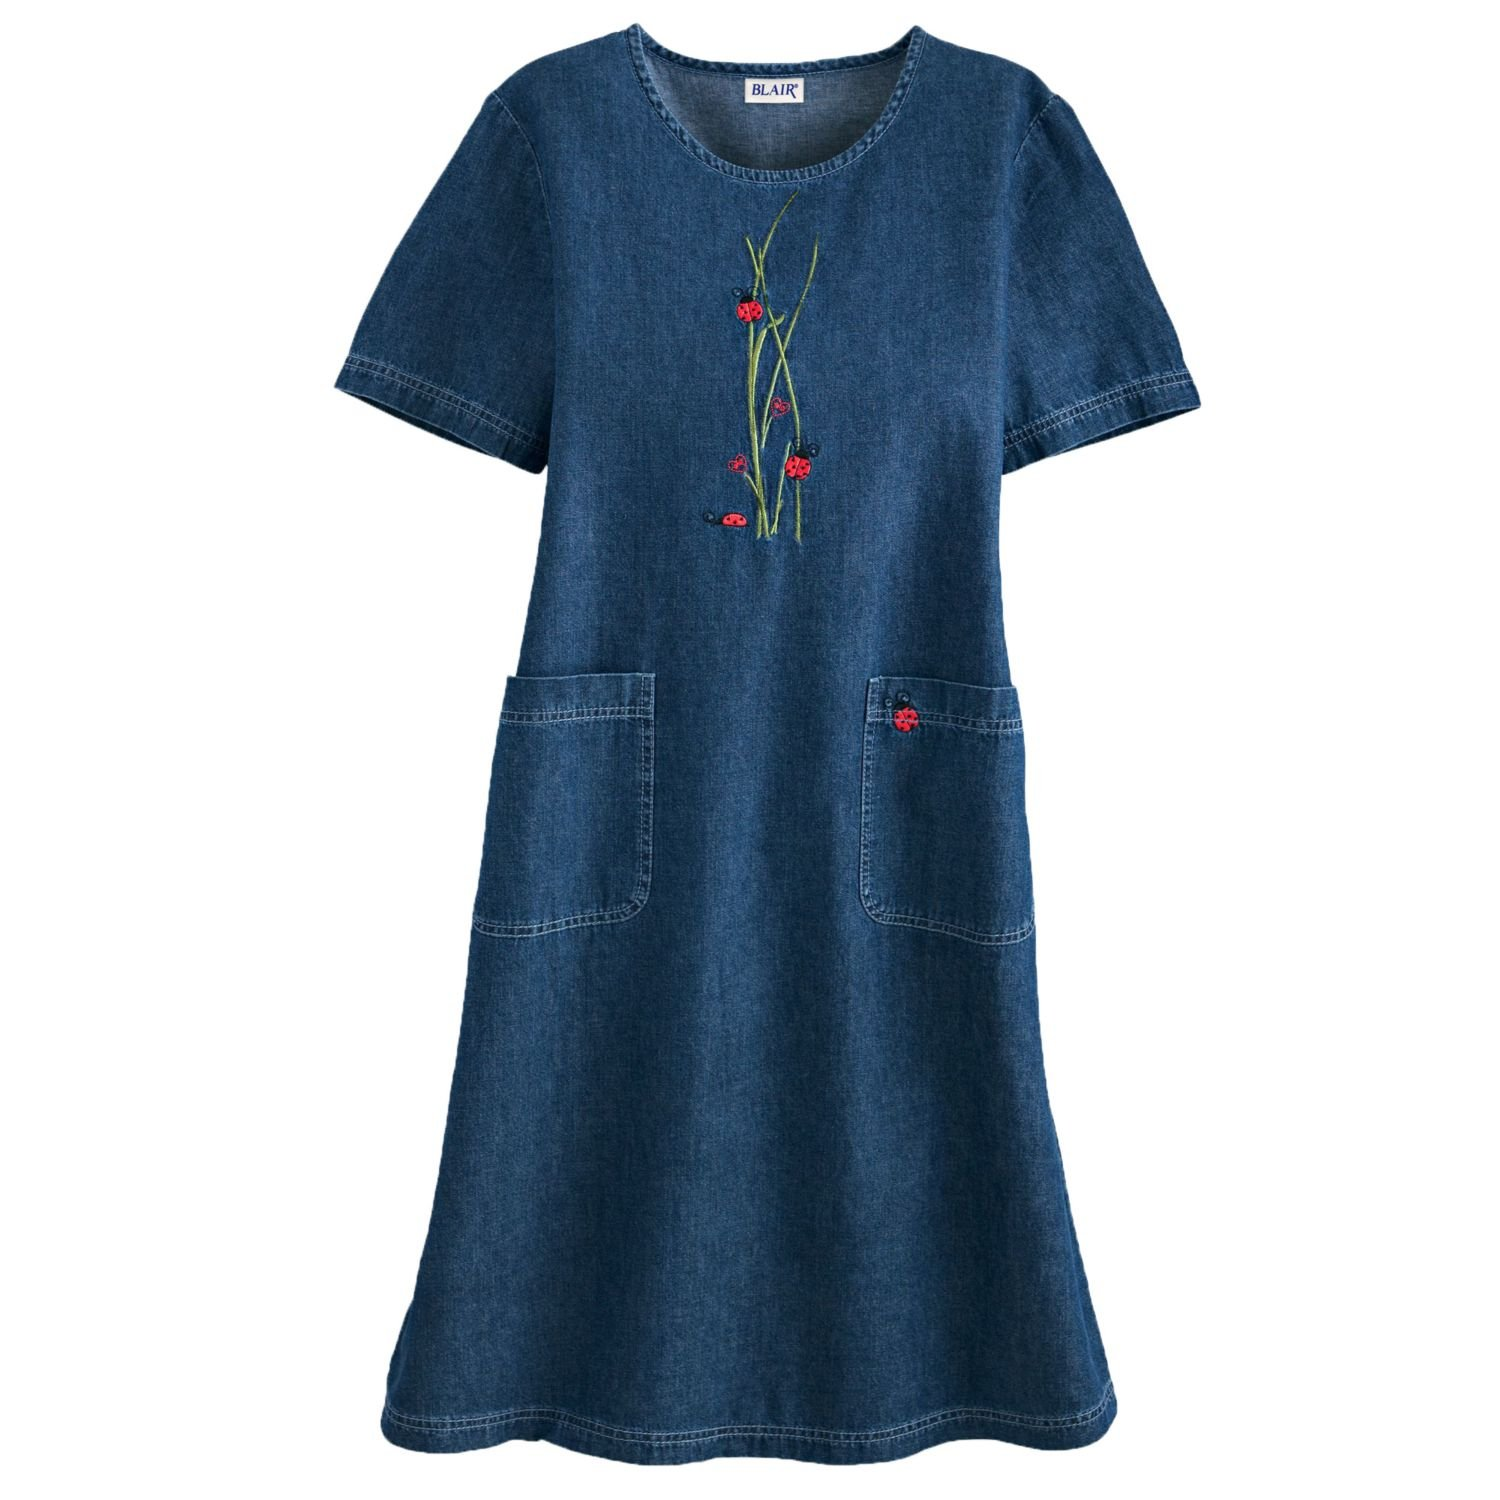 11d58552c4b72 Blair Women s Plus Size Embroidered Denim Dress - 3XL Ladybug at Amazon Women s  Clothing store